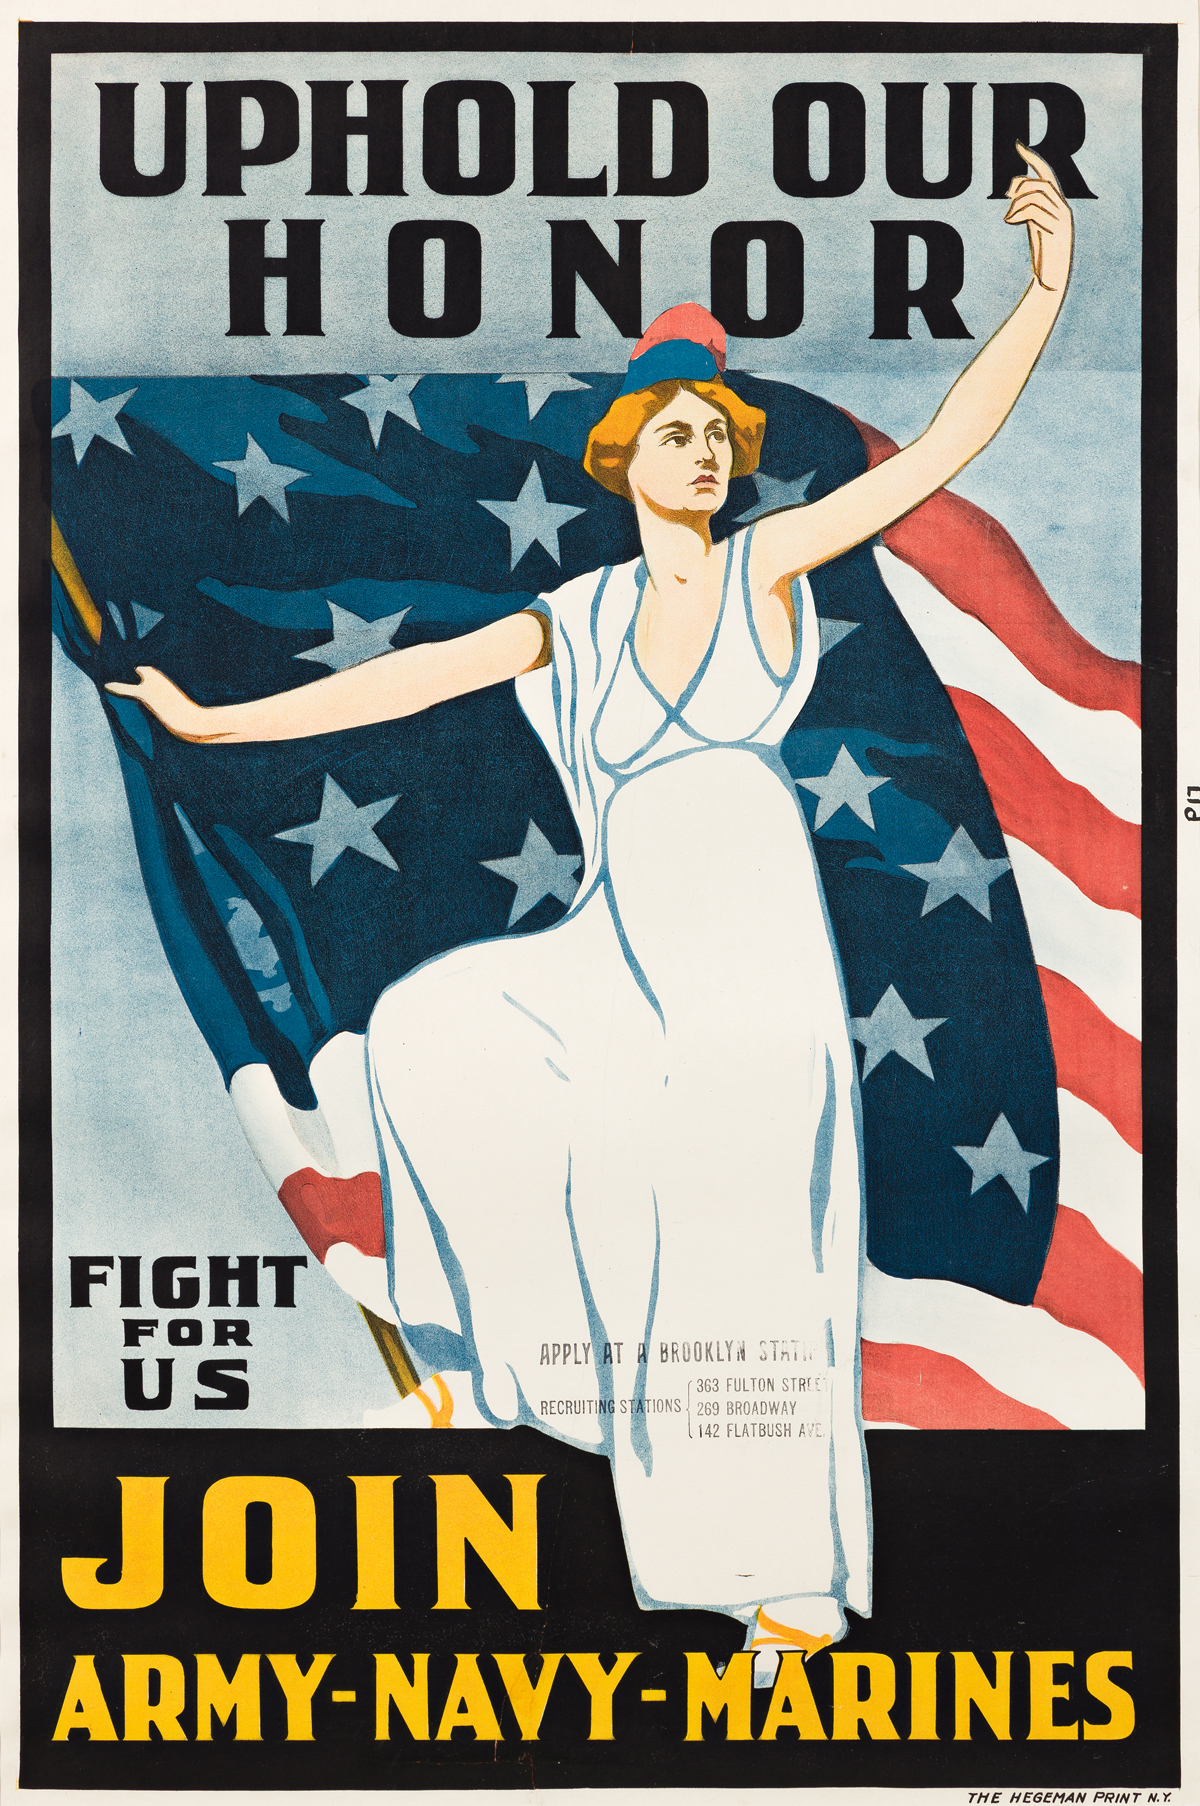 DESIGNER UNKNOWN.  UPHOLD OUR HONOR / JOIN ARMY - NAVY - MARINES. 1917. 39¼x26 inches, 99½x66 cm. The Hegeman Print, [New York.]